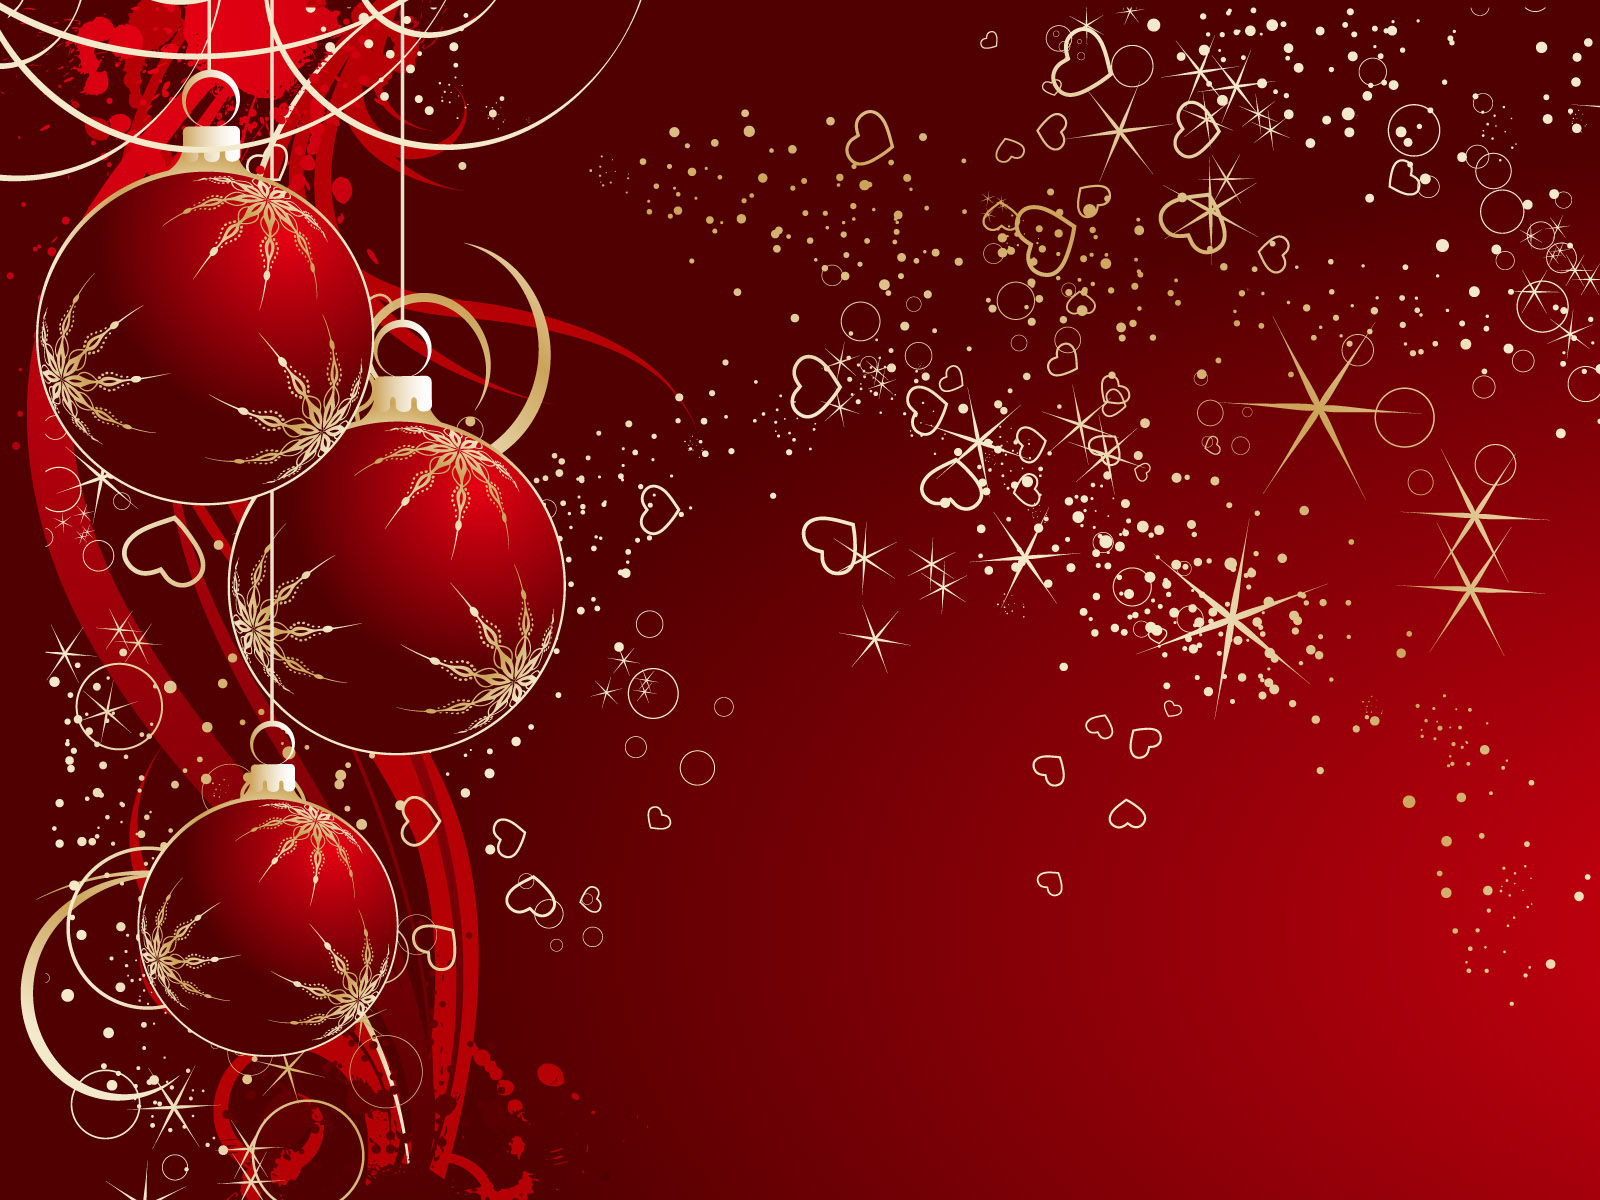 Christmas Backgrounds For Desktop 7026560 1600x1200